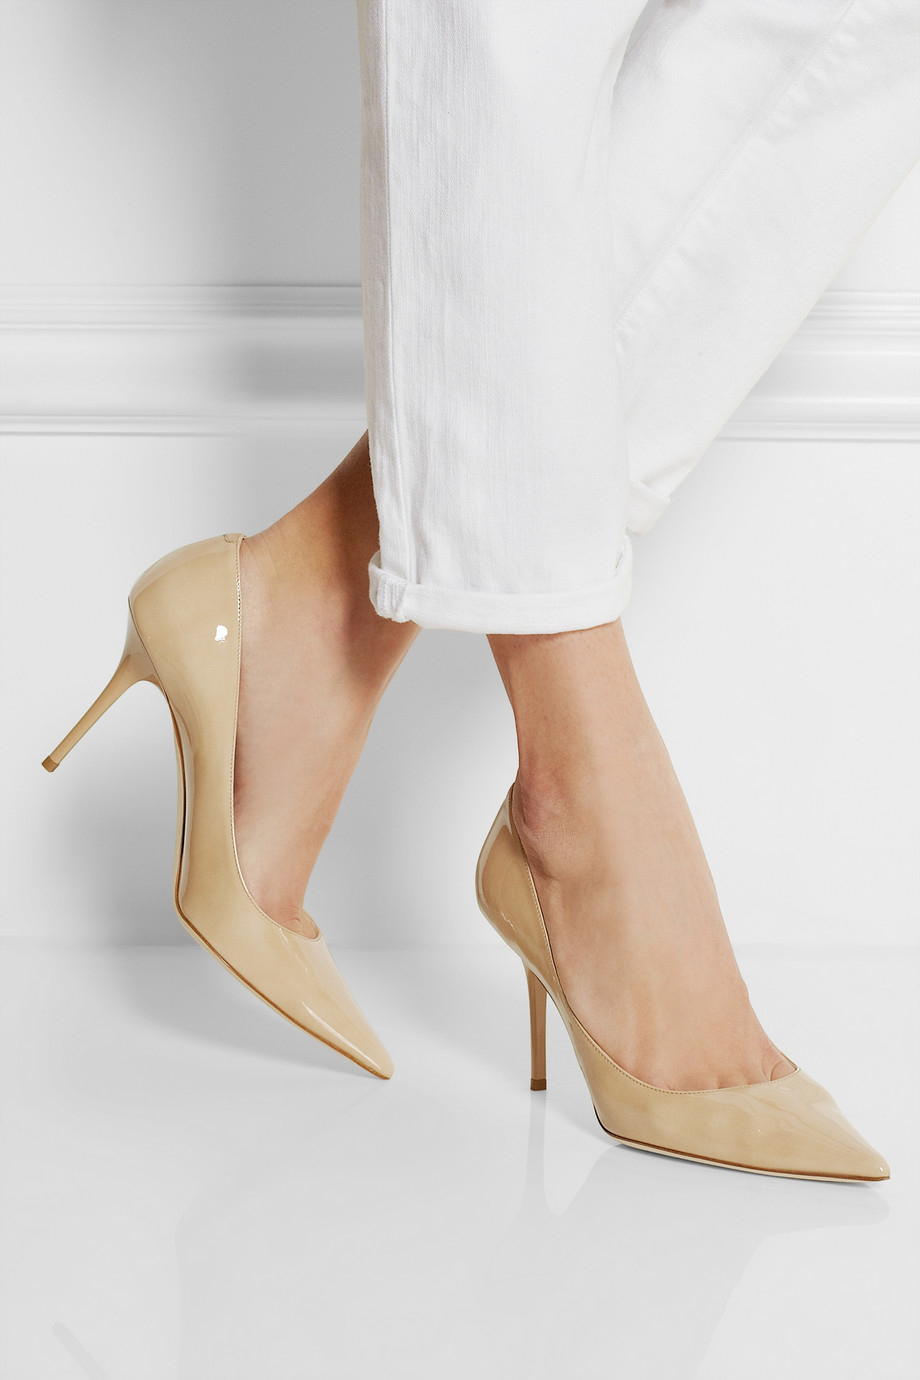 c392e5543095 ... clearance lyst jimmy choo agnes patent leather pumps in natural 9a61a  29f5a